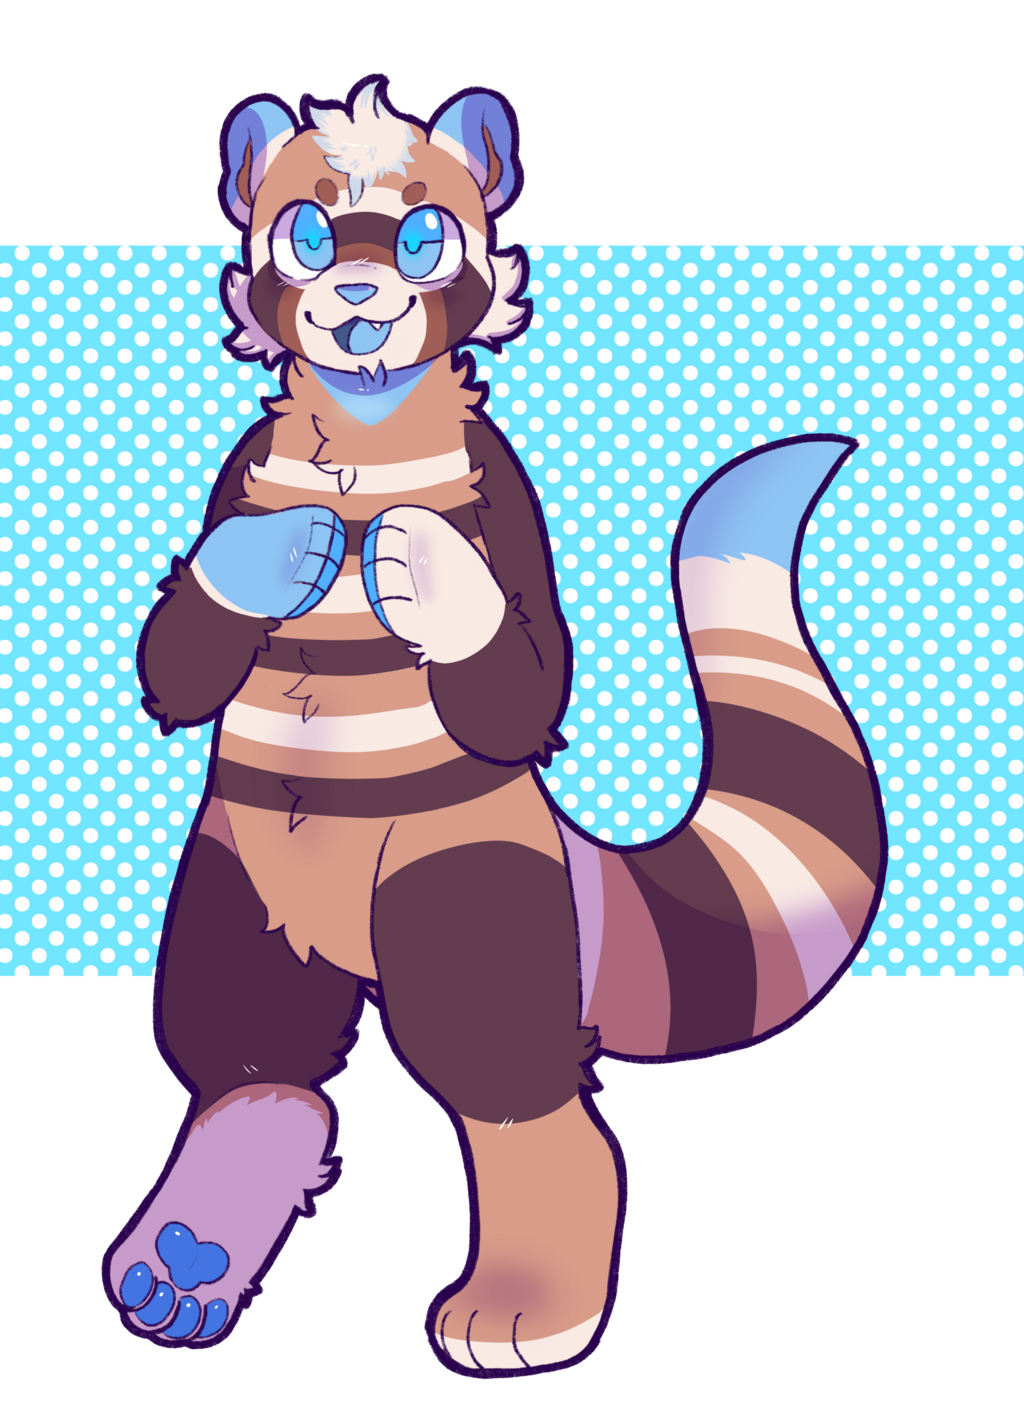 [C] There he is!